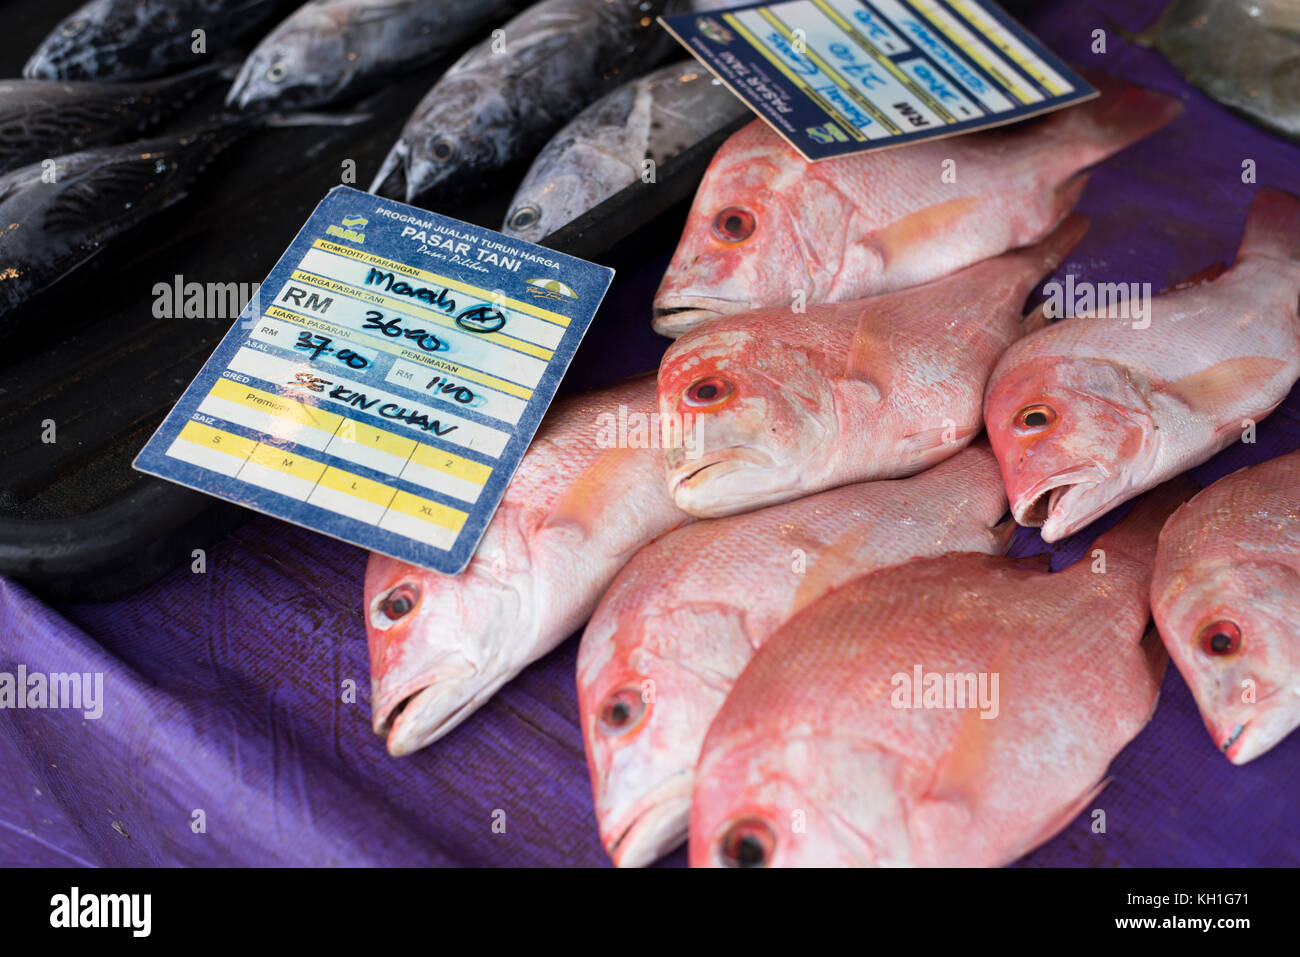 Kelana Jaya,Petaling Jaya,Selangor,Malaysia-11th November 2017 ; pile of a red snapper fish with price tag for sale Stock Photo